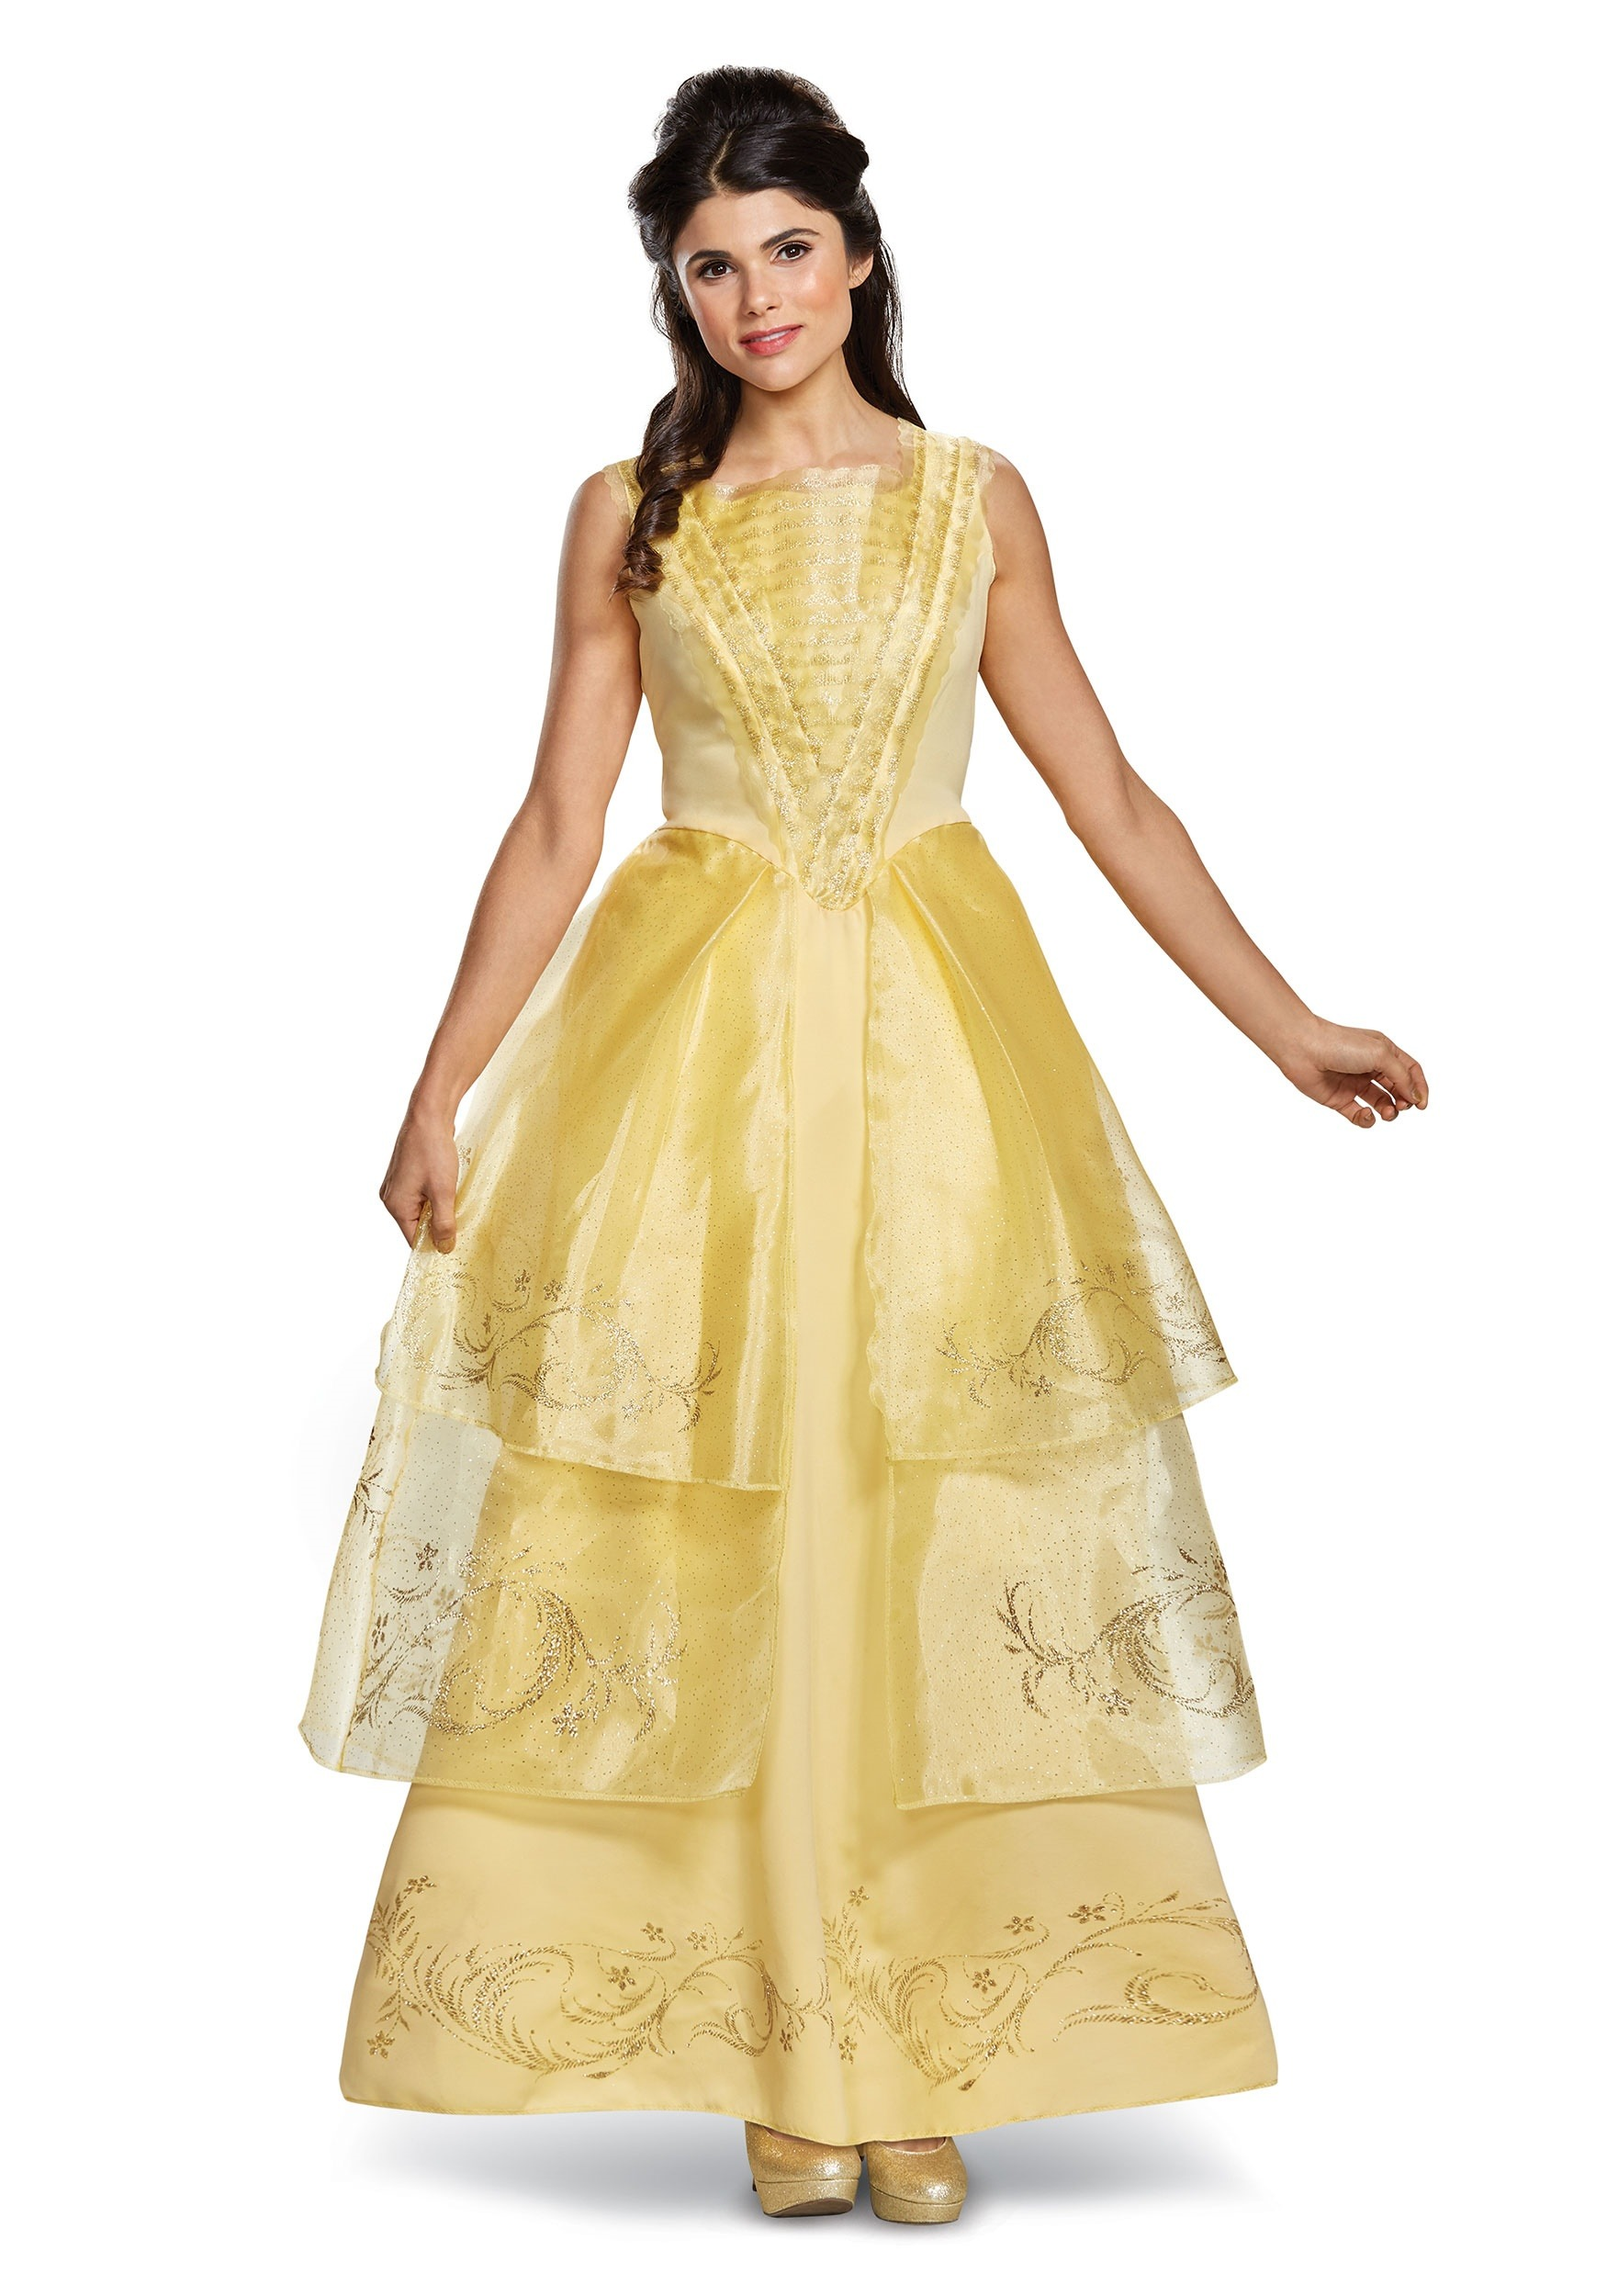 Deluxe Belle Ball Gown for adults